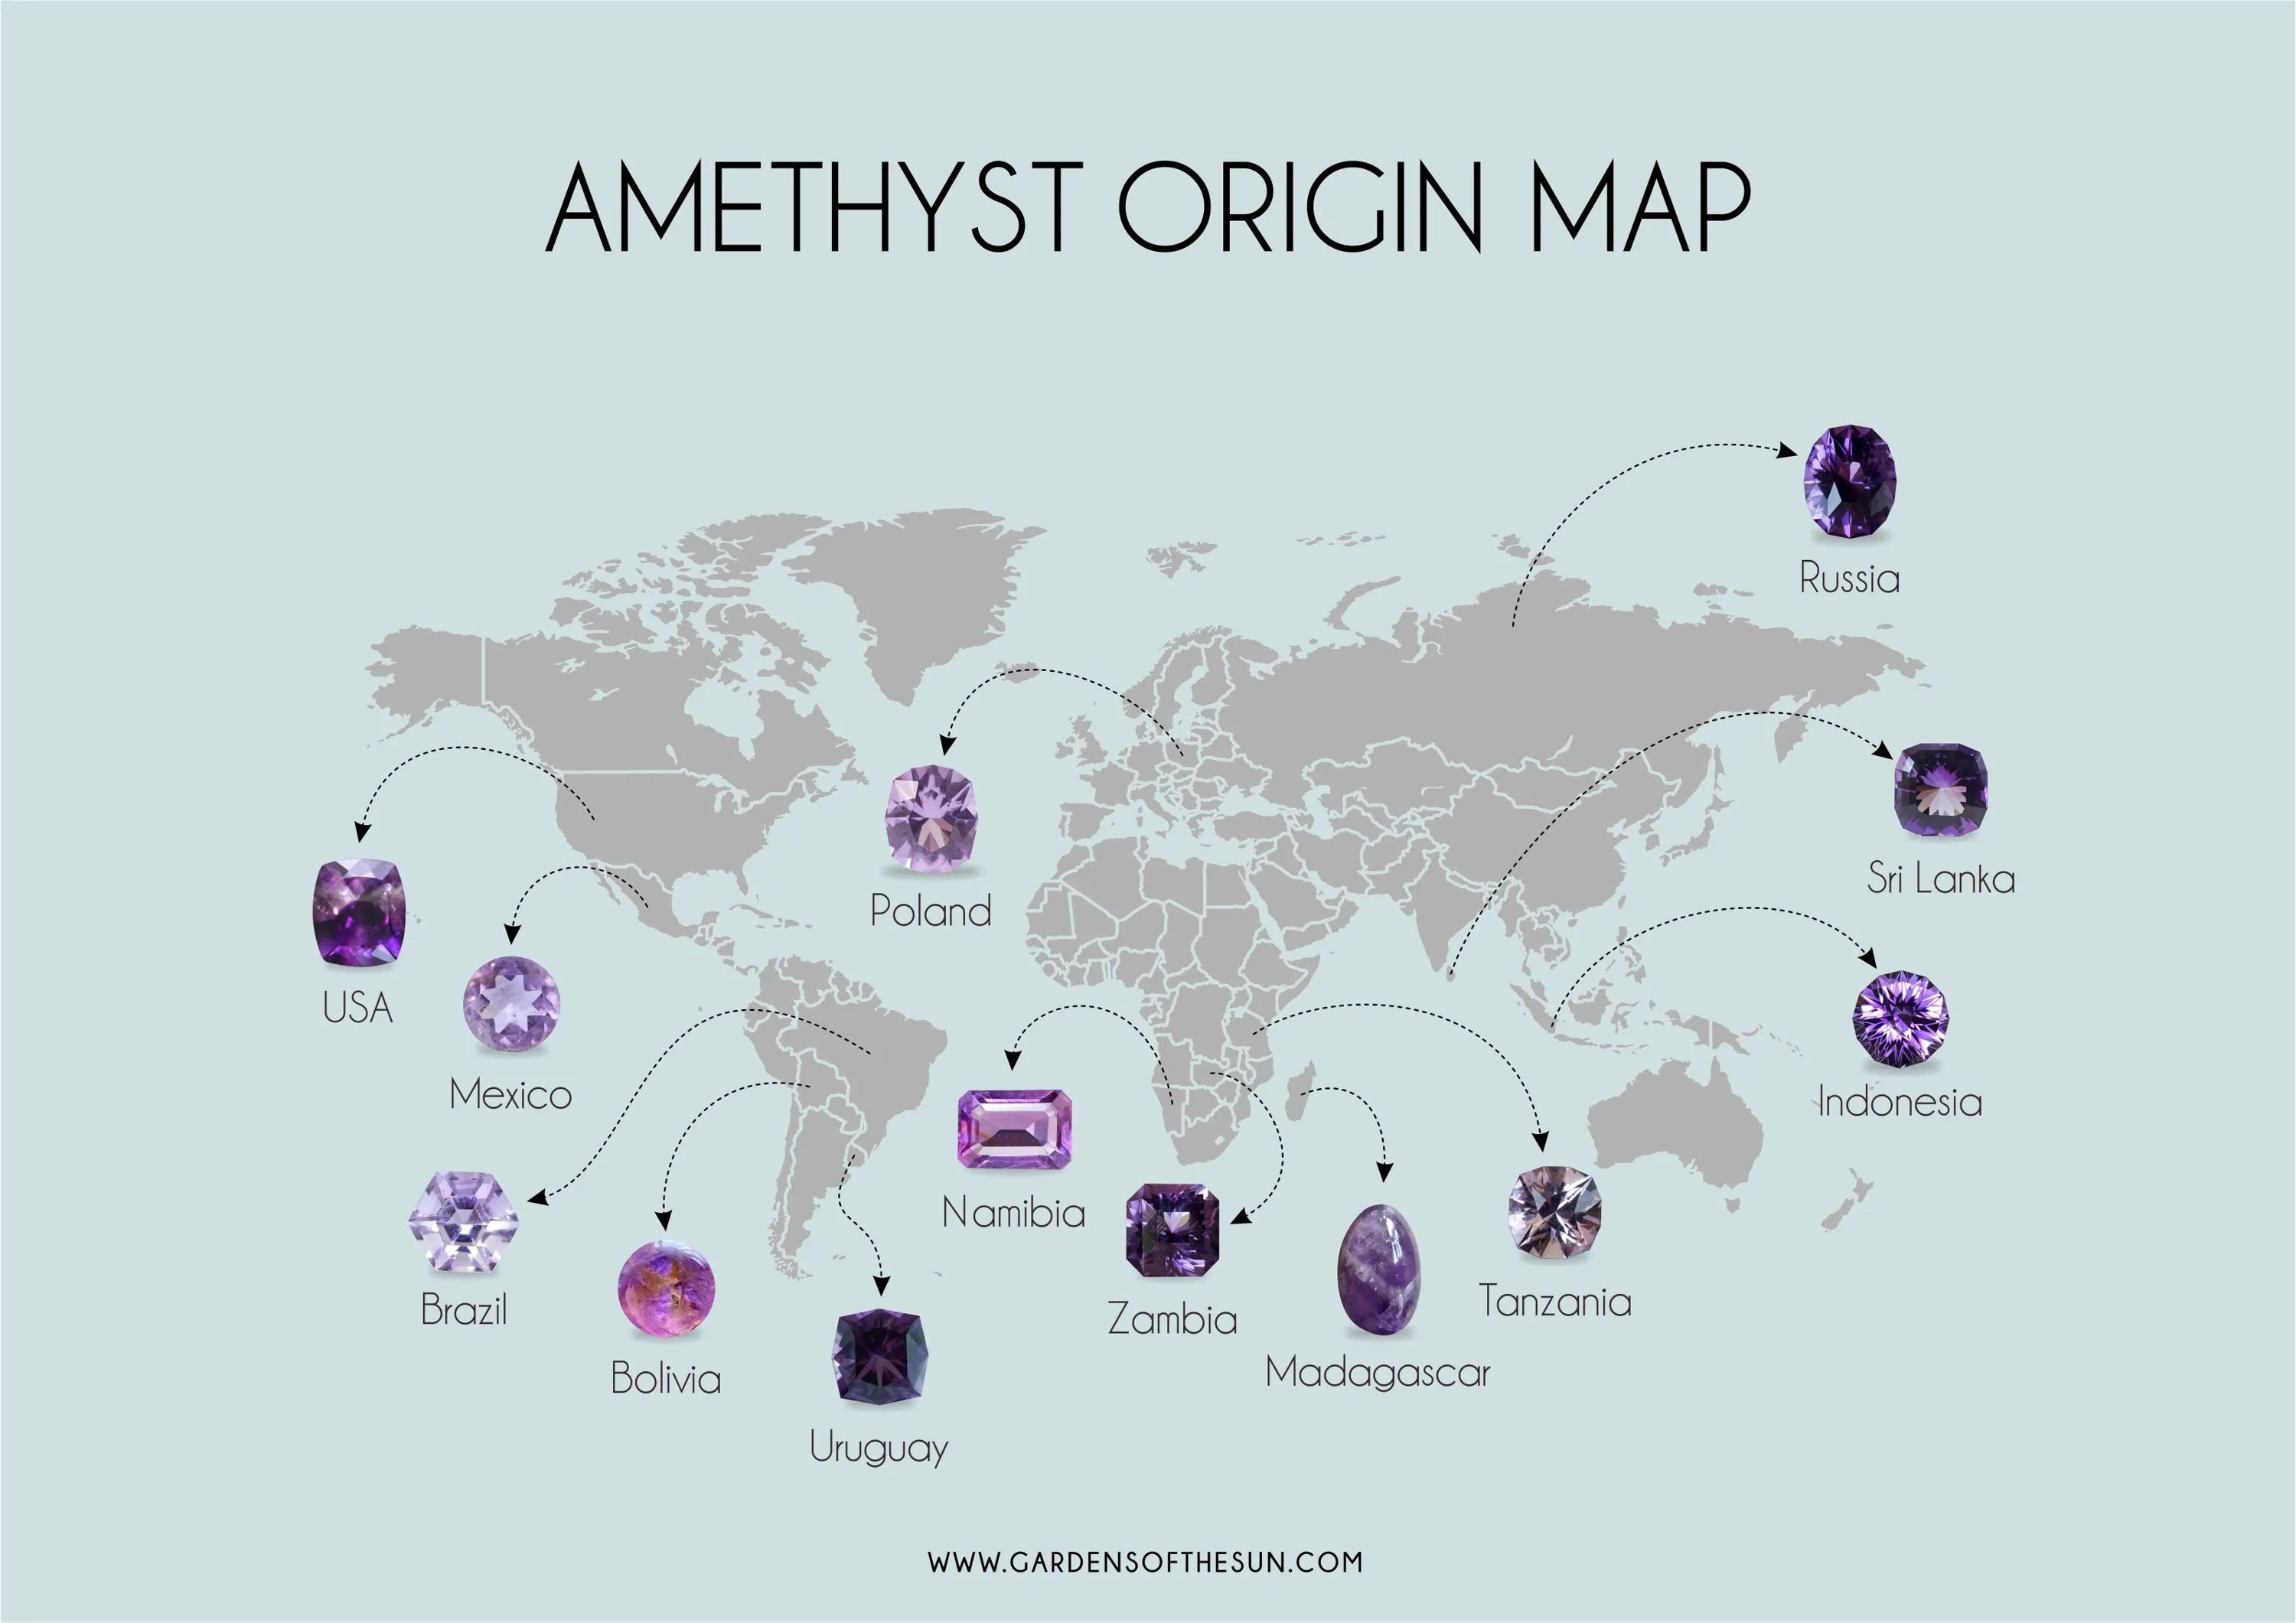 130 Blog Gardens Of The Sun Ethical Jewelry Ideas In 2021 Ethical Jewelry Birthstones Jewelry